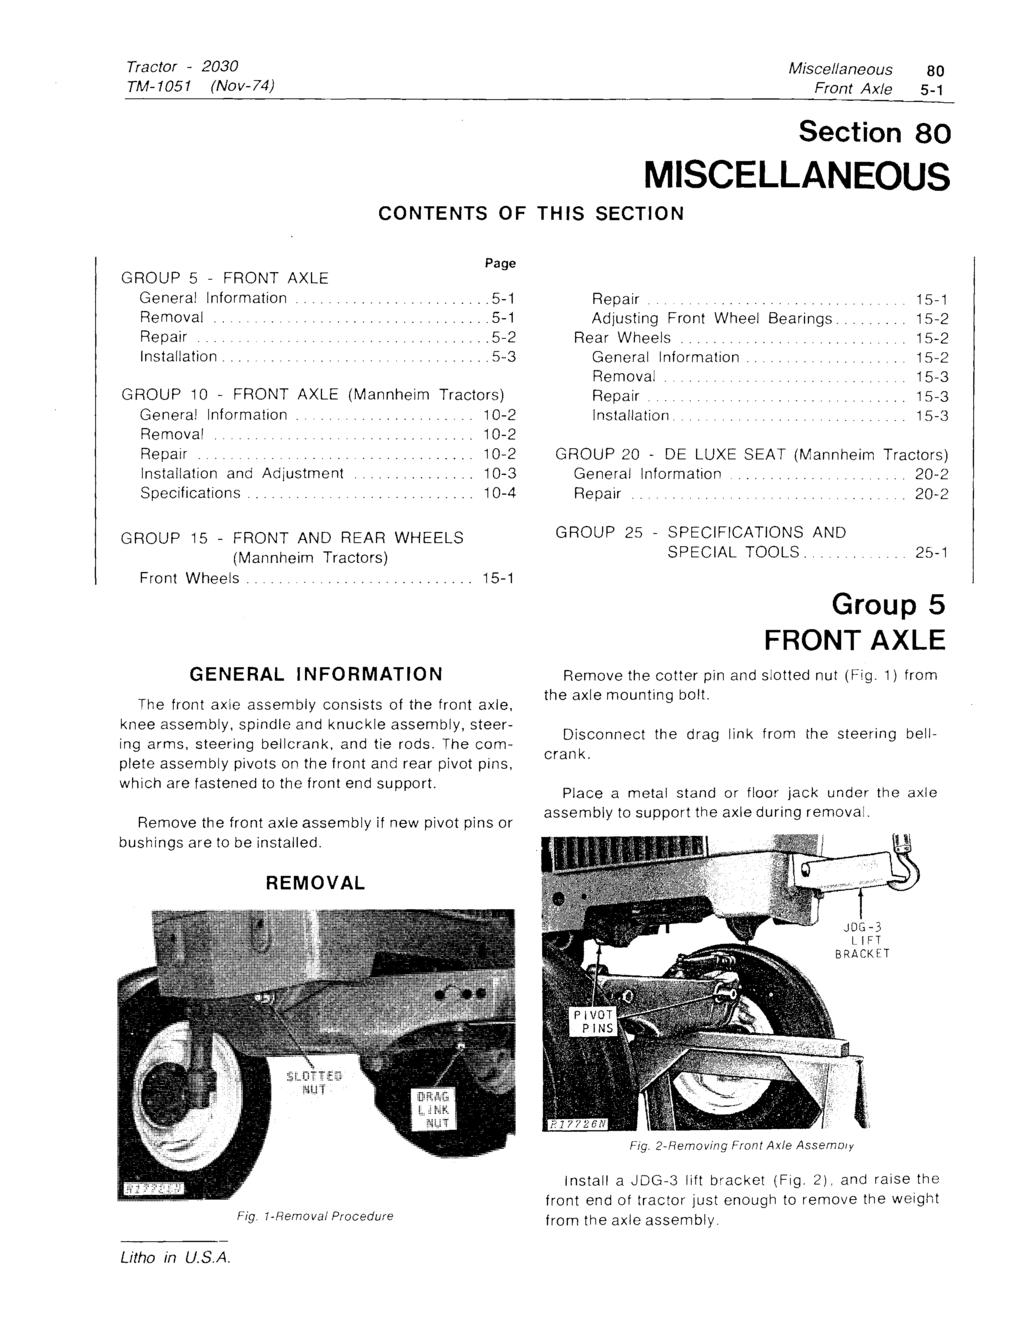 Miscellaneous 80 Front Axle 5-1 CONTENTS OF THIS SECTION Section 80 MISCELLANEOUS GROUP 5 - FRONT AXLE... 5-1............................. 5-1 Repair........... 5-2.......... 5~ GROUP 10 - FRONT AXLE.